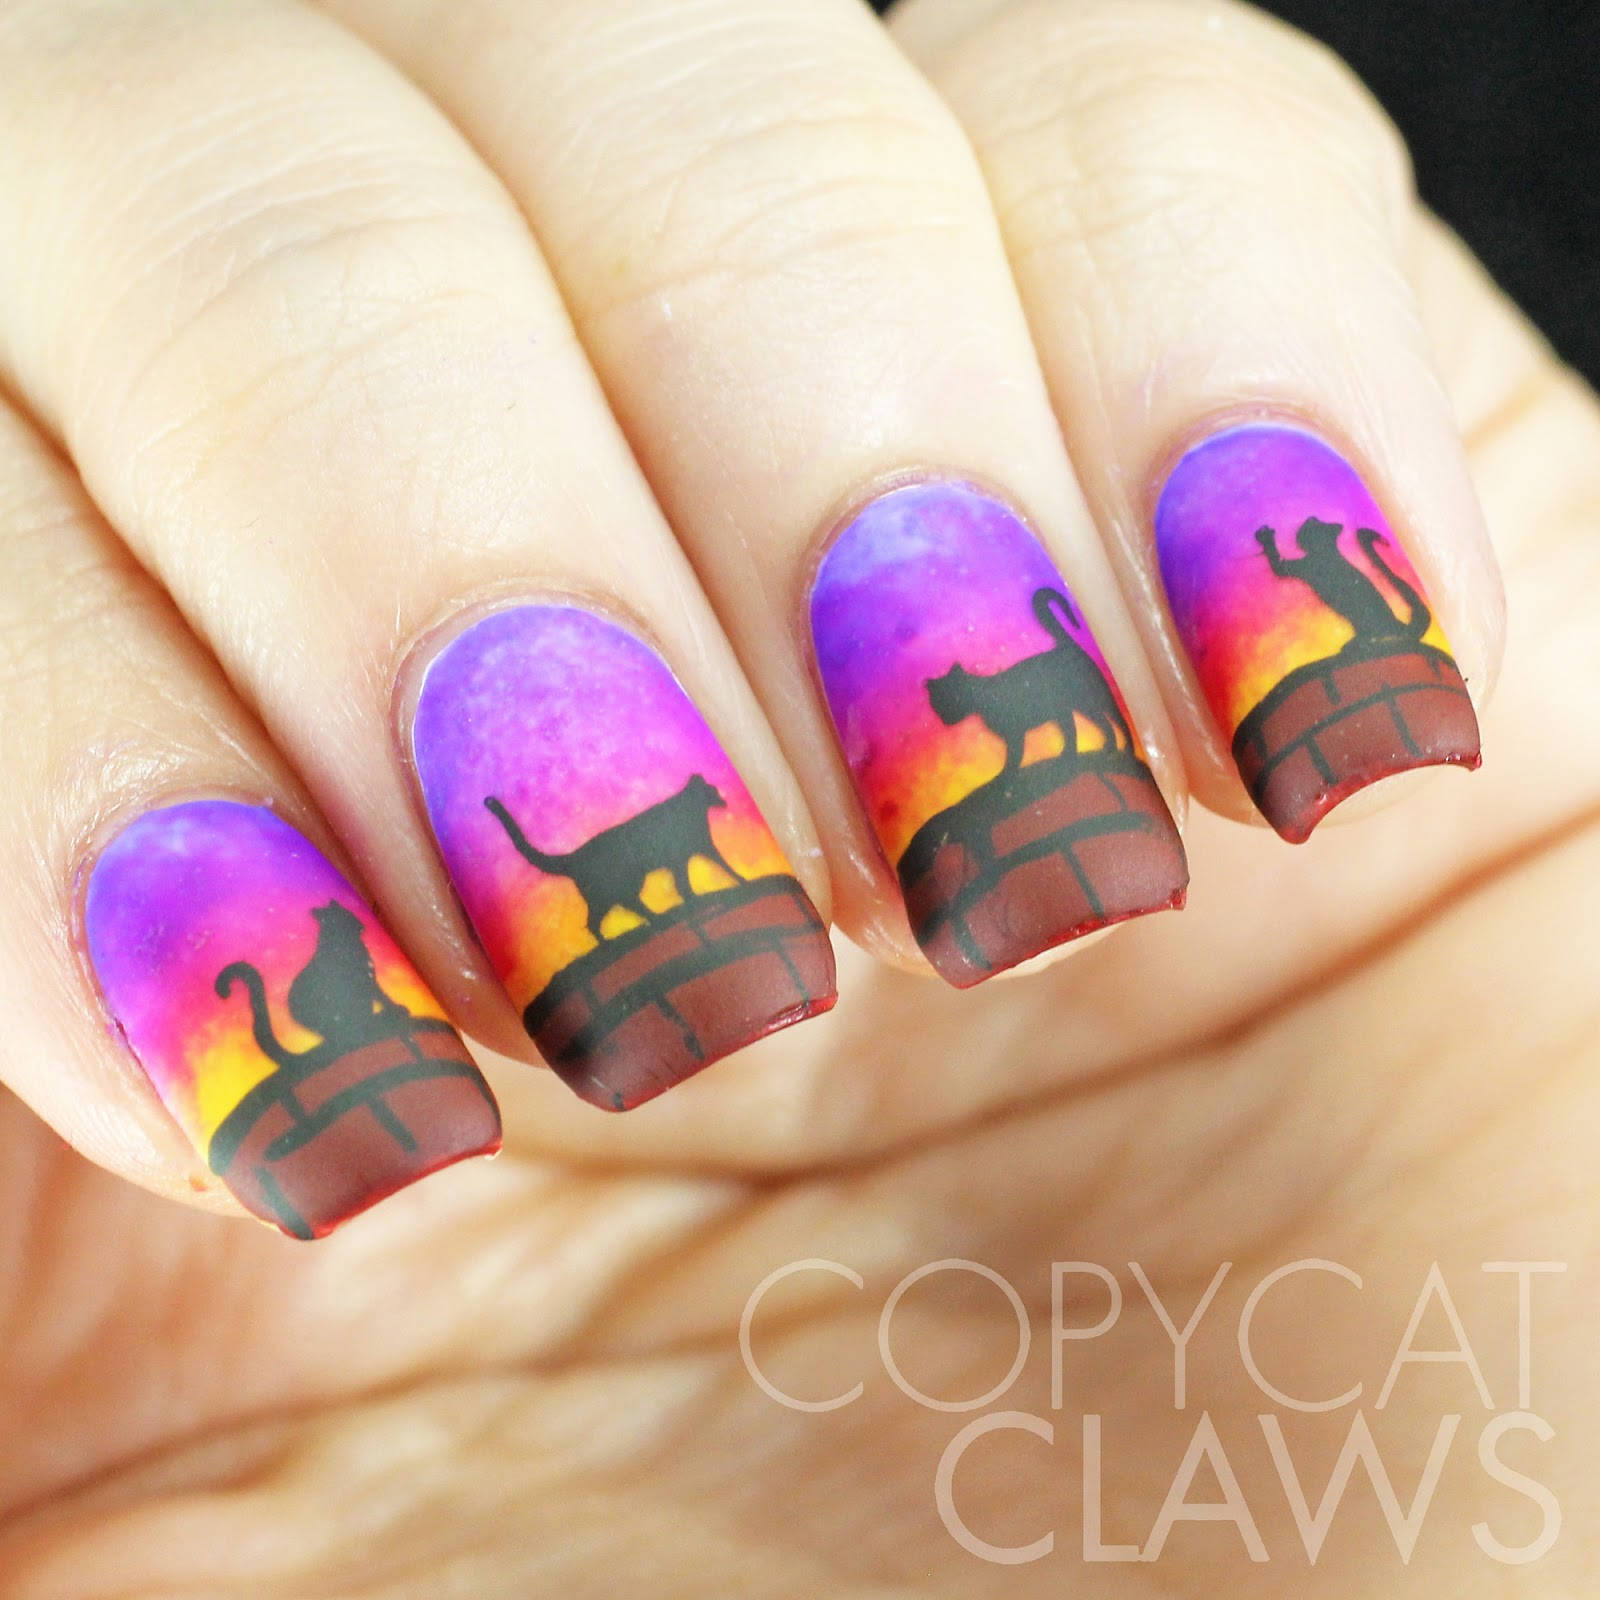 Copycat Claws: Cats at Sunset Nail Art